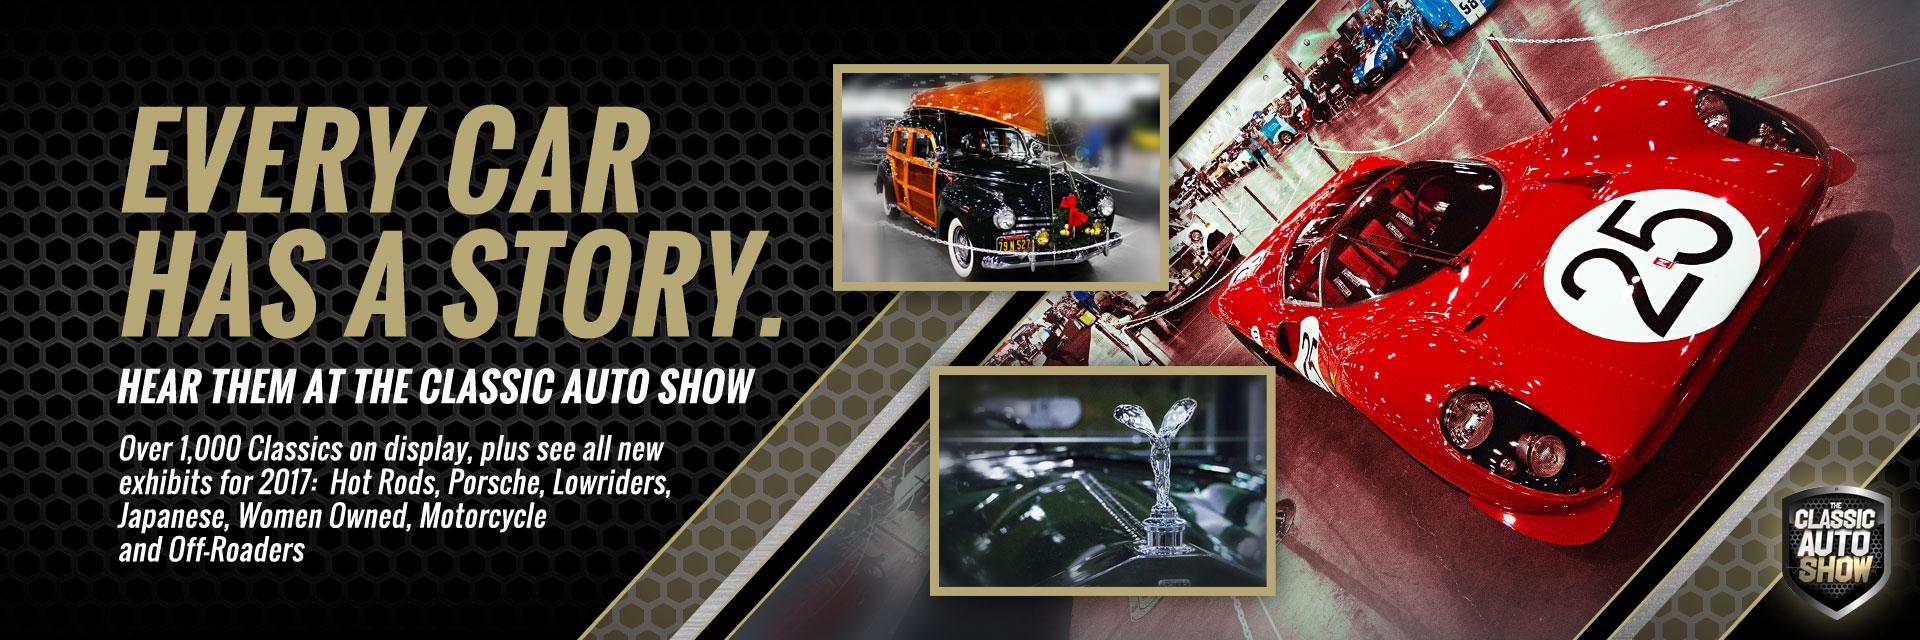 1000 Classic Autos on Display at The Classic Auto Show